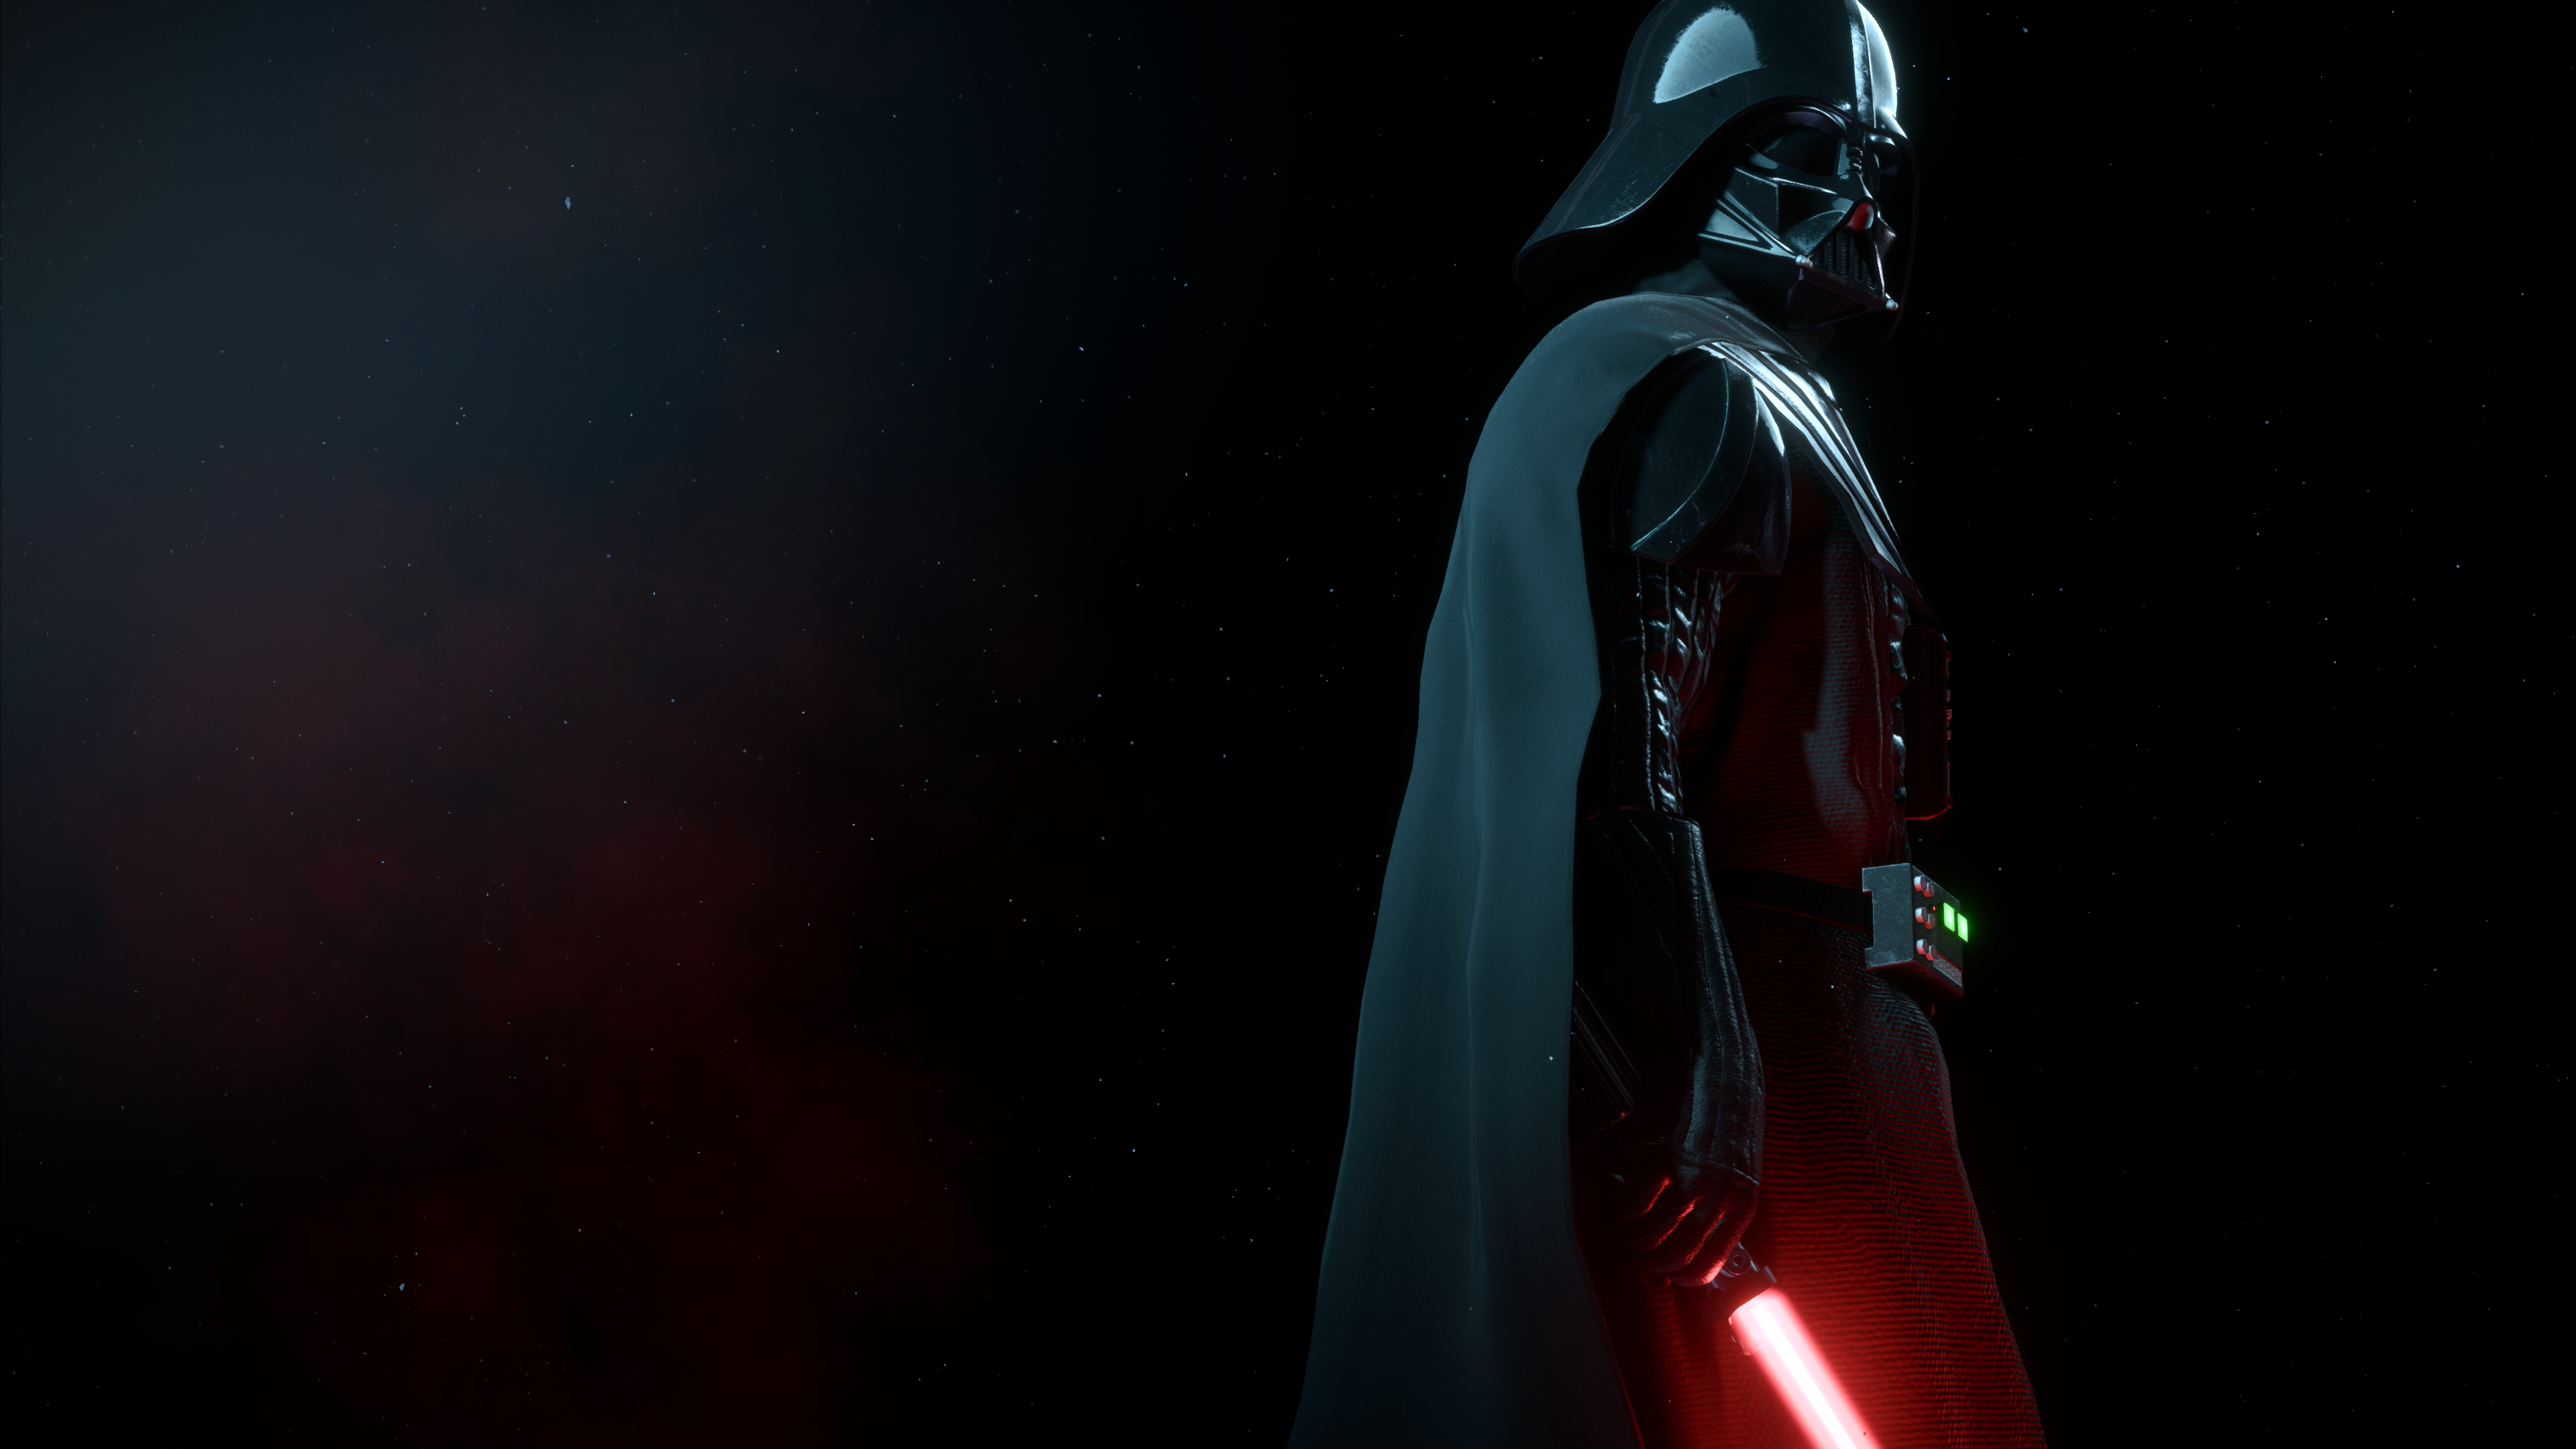 Star Wars Battlefront 2 Wallpaper 4k Posted By Sarah Johnson